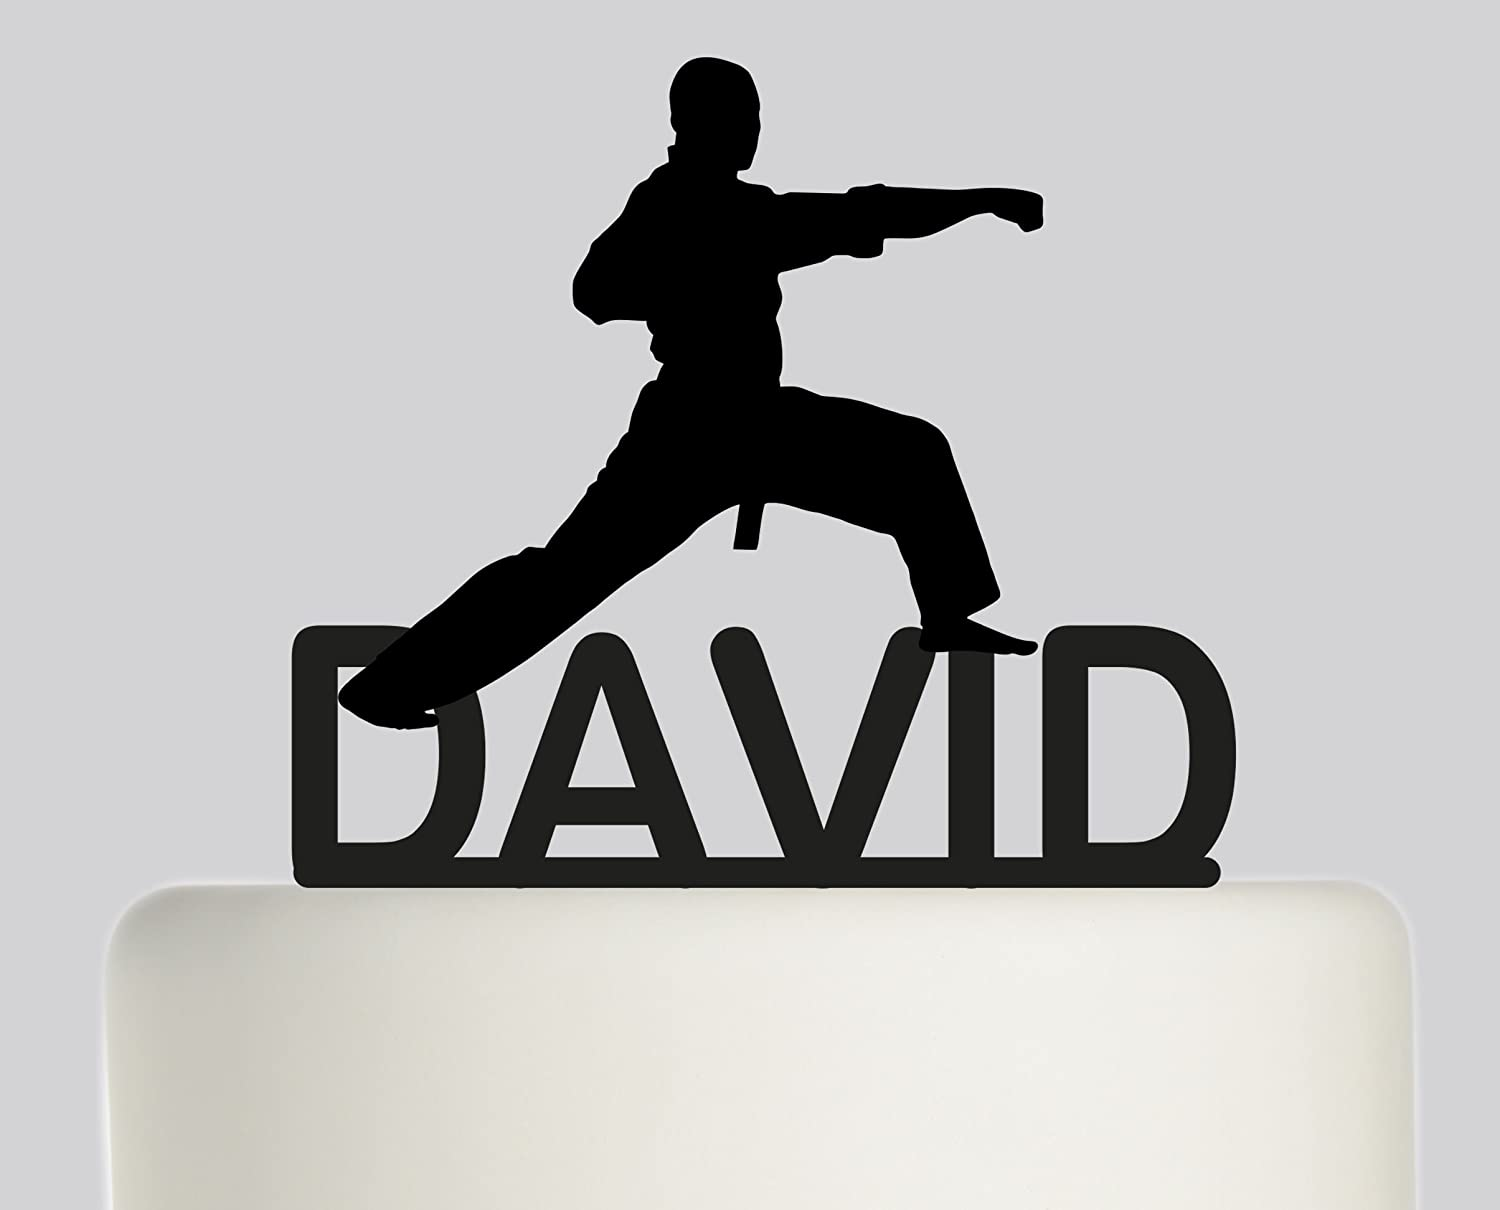 Large Birthday Cake topper Martial Arts, Judo, Karate, Taekwondo, Ju-Jitsu Personalised with YOUR NAME. Ideal birthday cake decoration, birthday party Acrylic cake topper, Available in Gold Mirror, Gold Sparkle, Silver Mirror, Silver Sparkle, Bronze Mirror